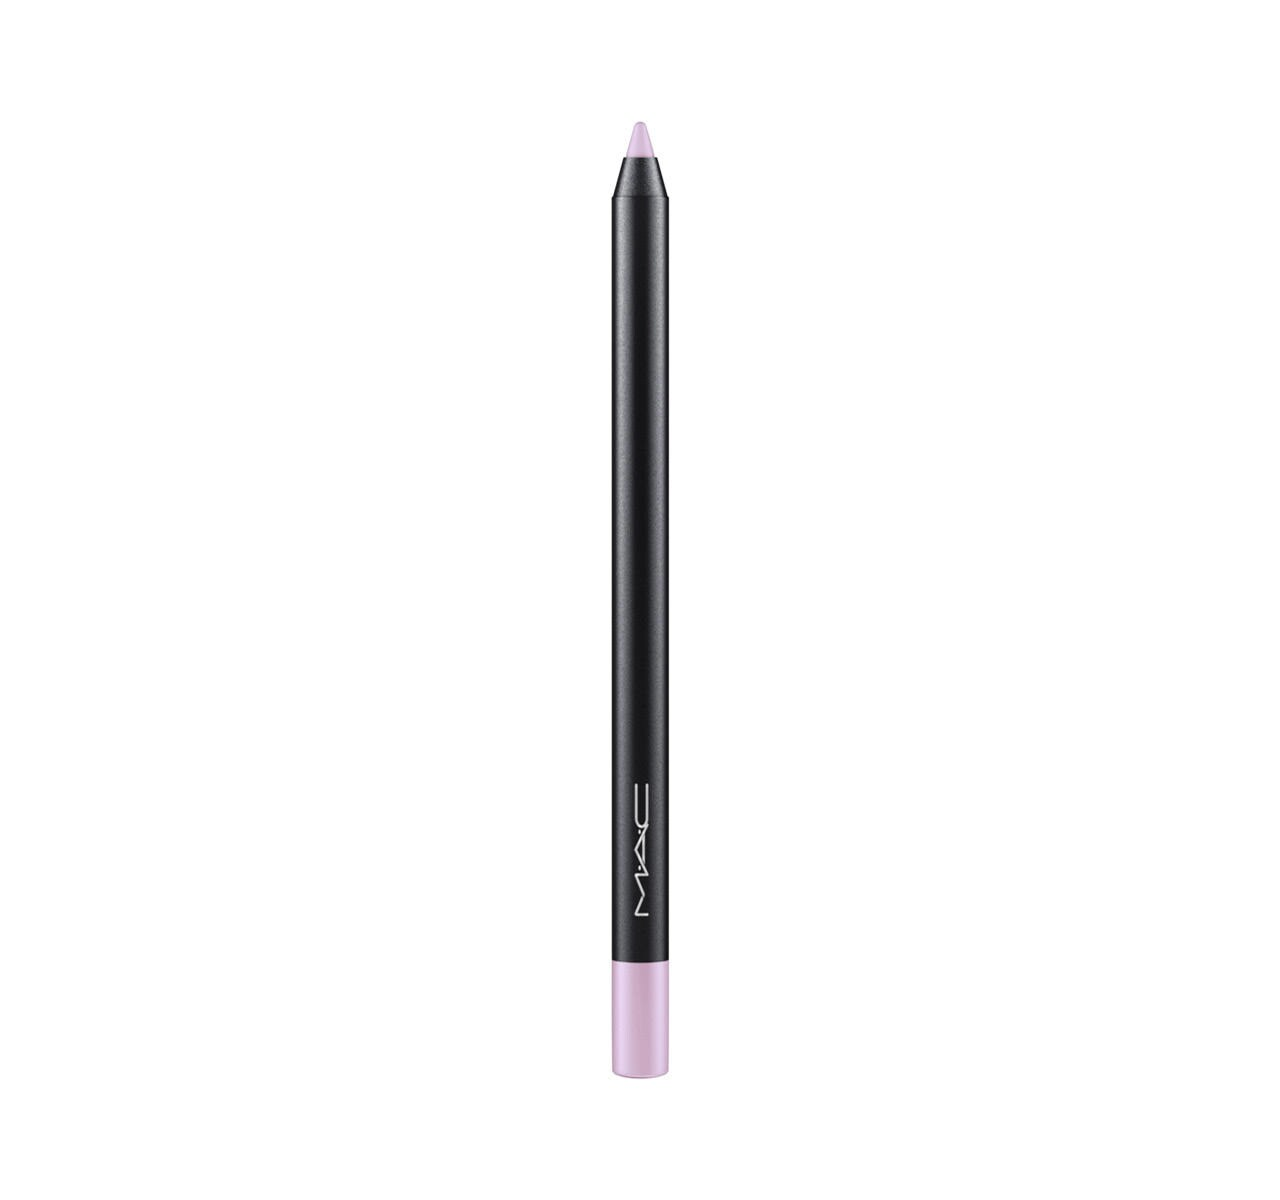 Dare Hue Brow Pencil Mac Cosmetics Canada Official Site